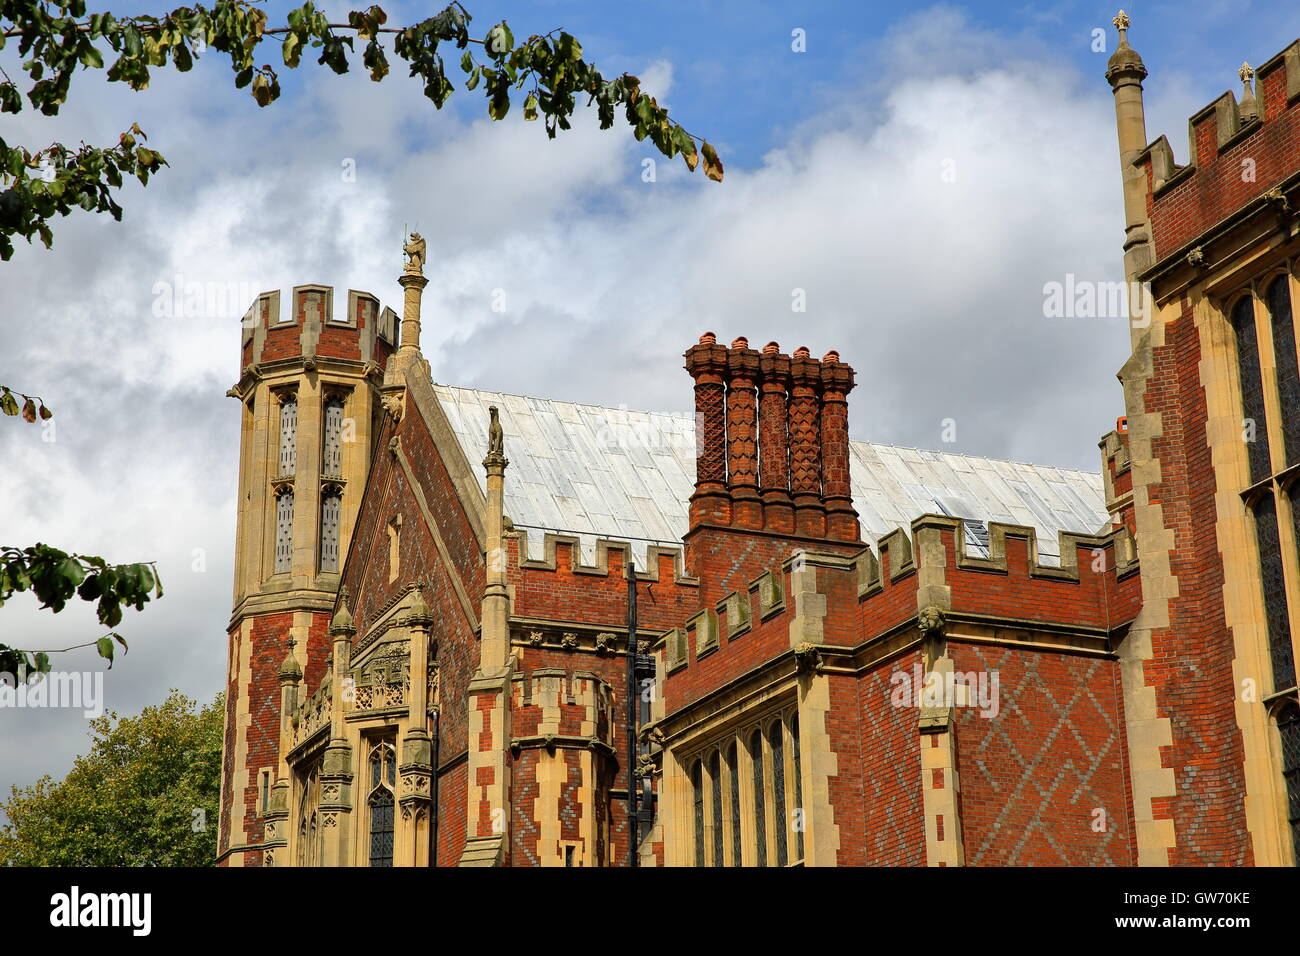 Lincoln's Inn : view of Great Hall from Lincoln's Inn fields, London, Great Britain - Stock Image